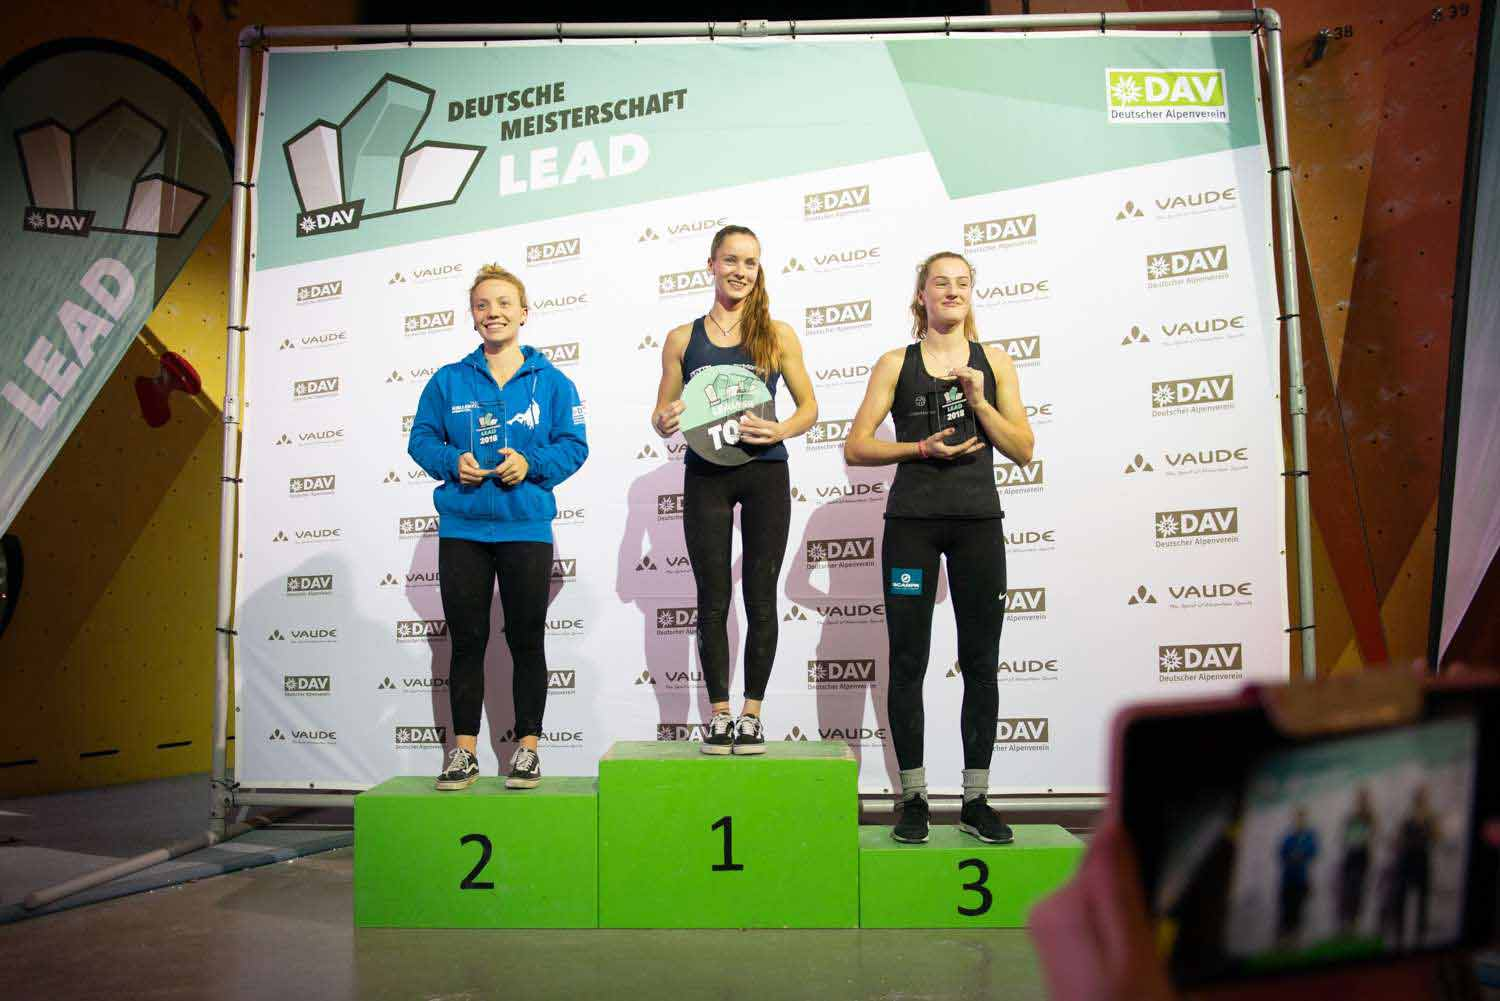 The three best placed in the lead competition in Darmstadt